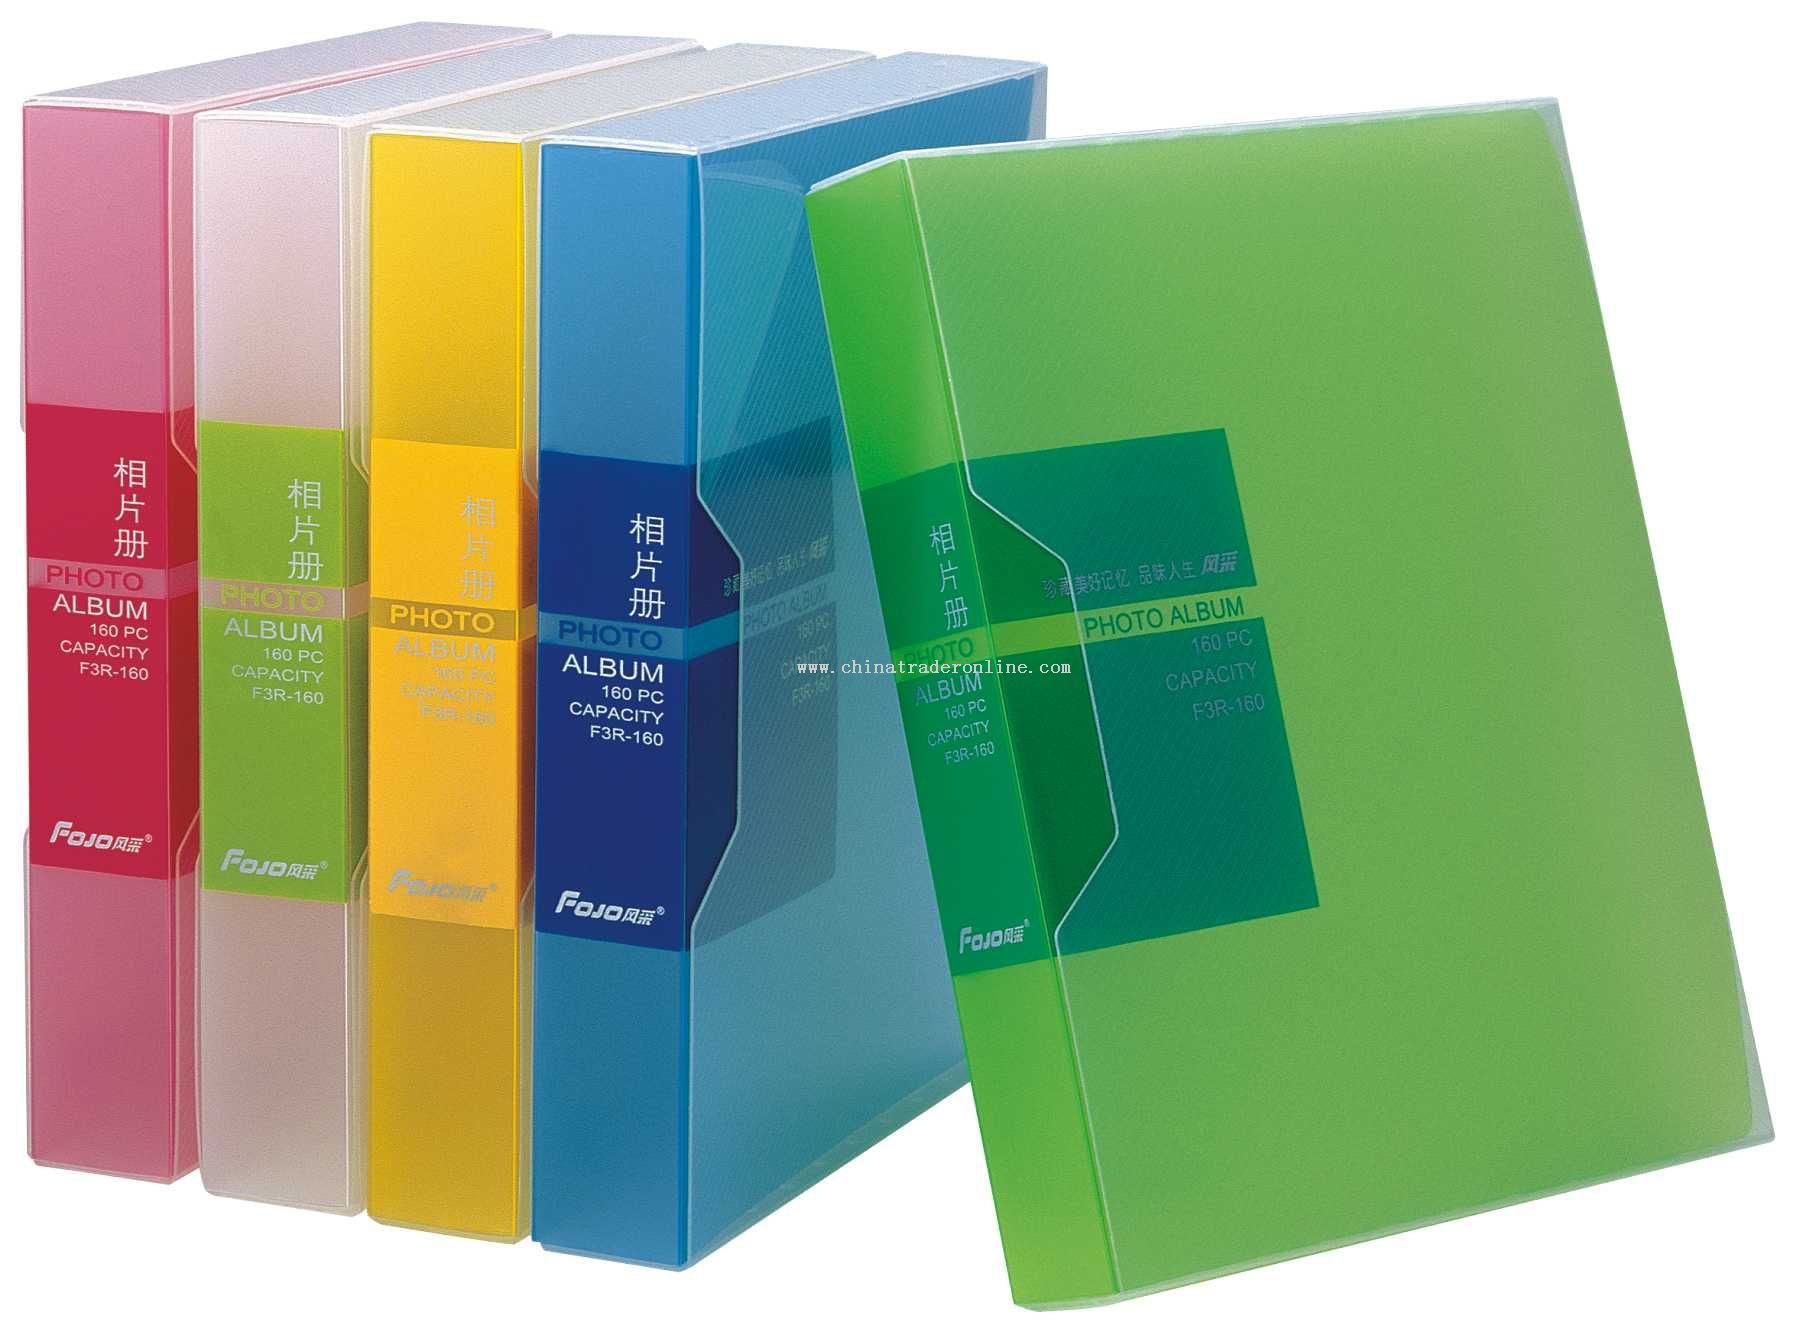 PP clear photo album holder 4R-160pcs